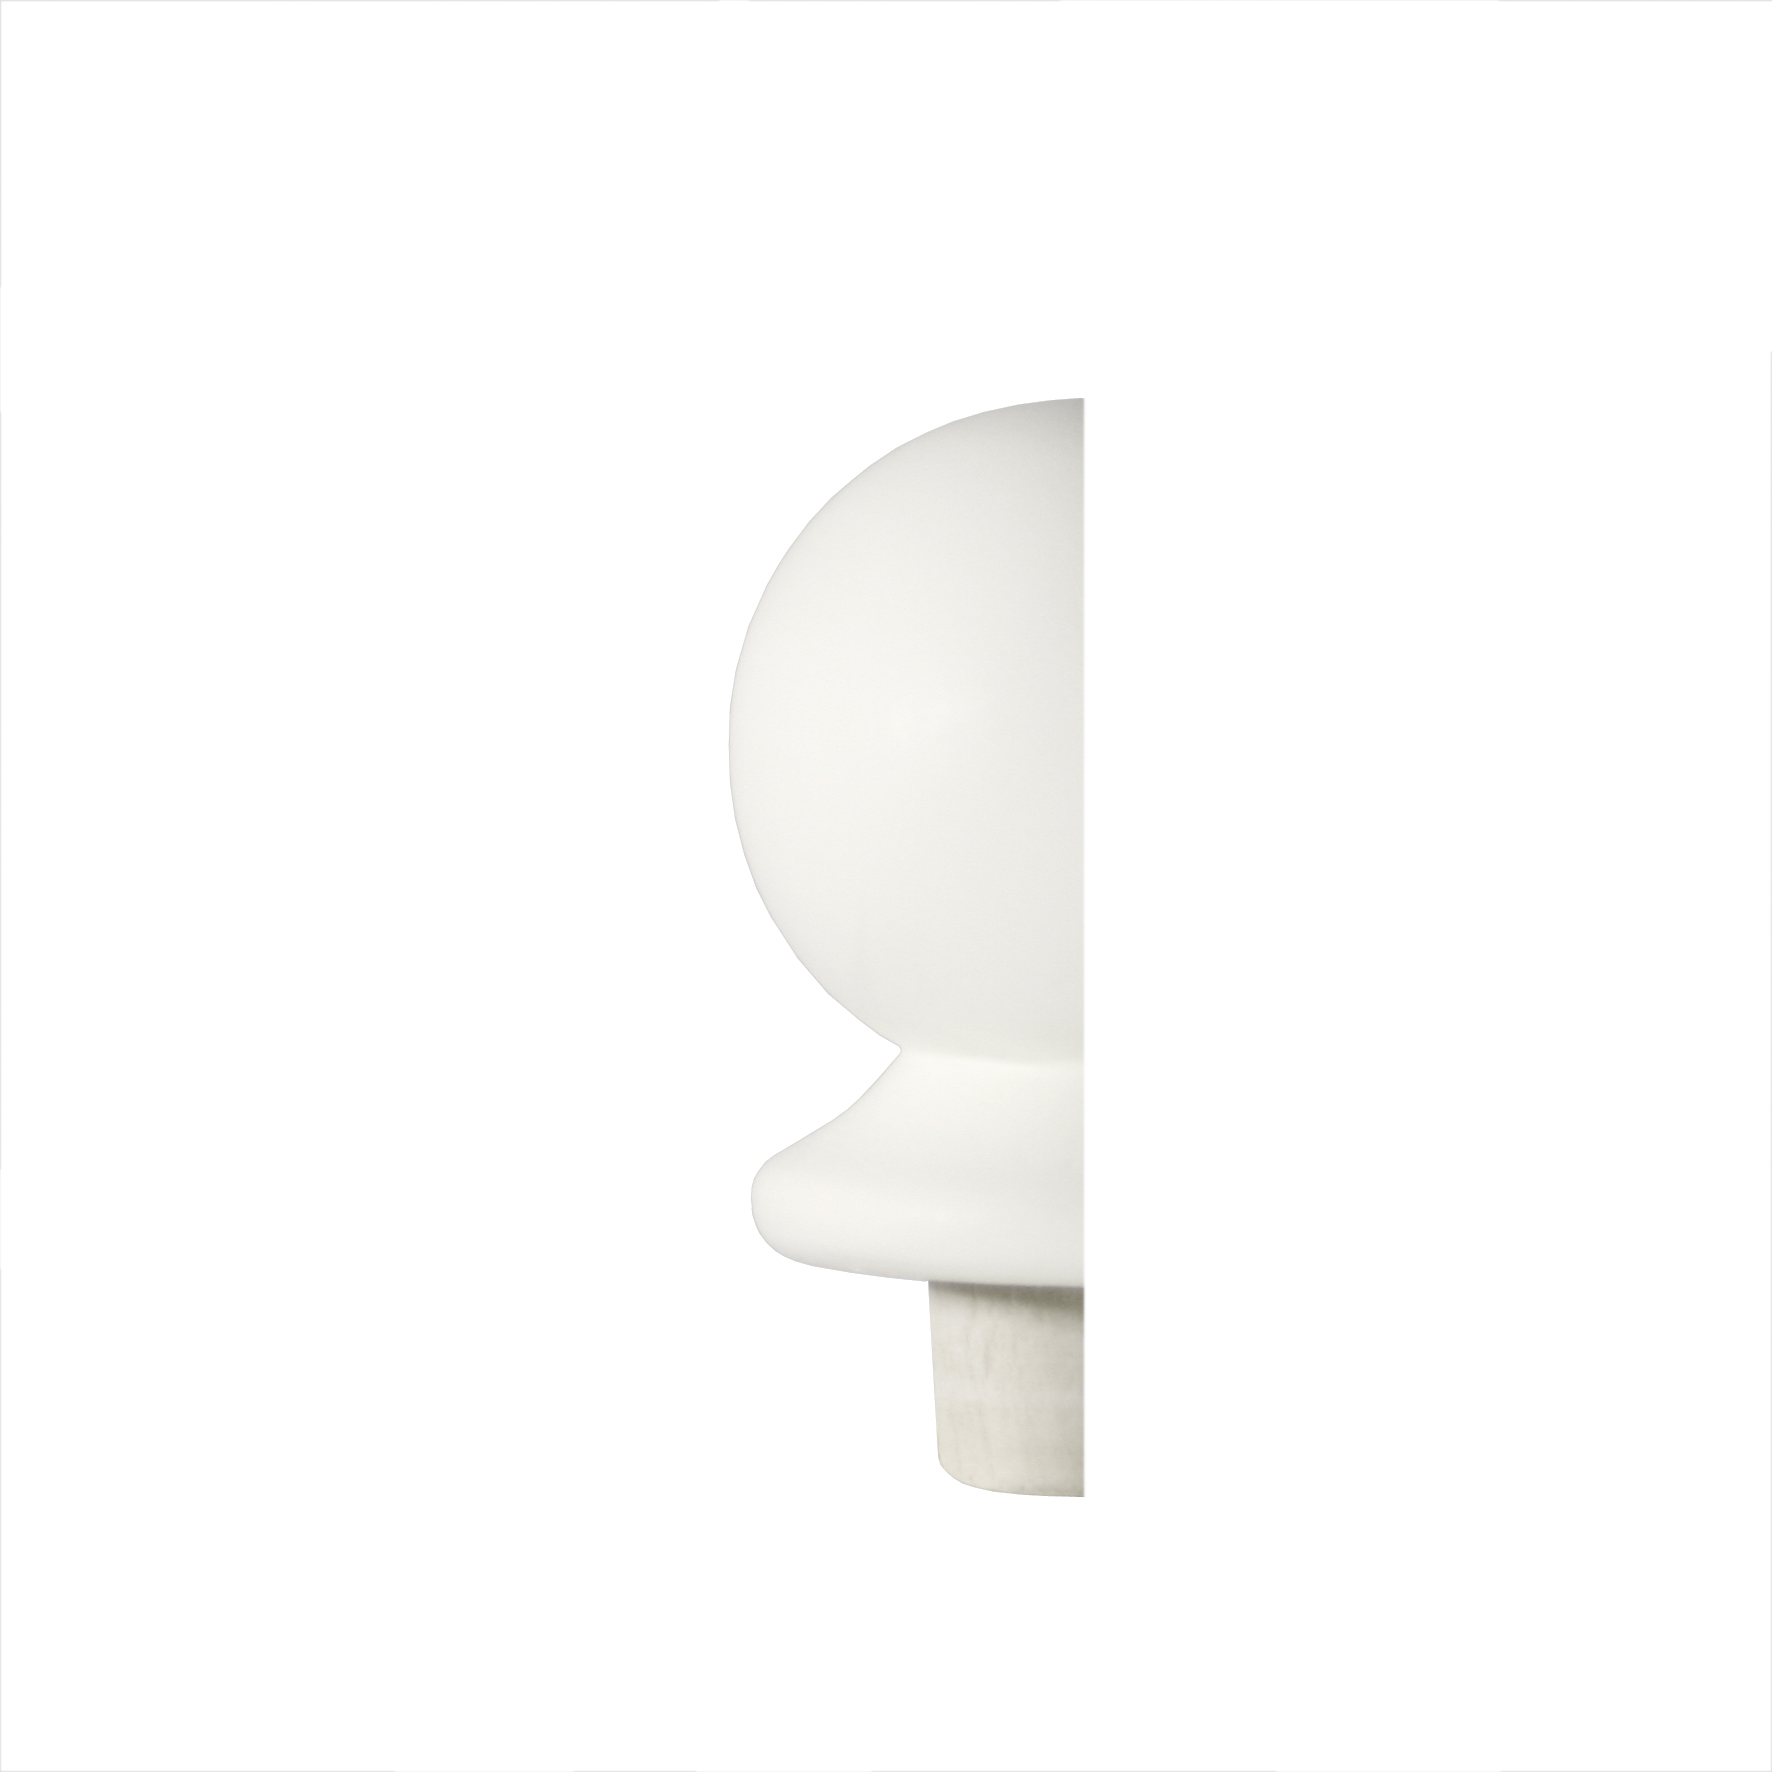 1 White Half Ball Newel Cap 90